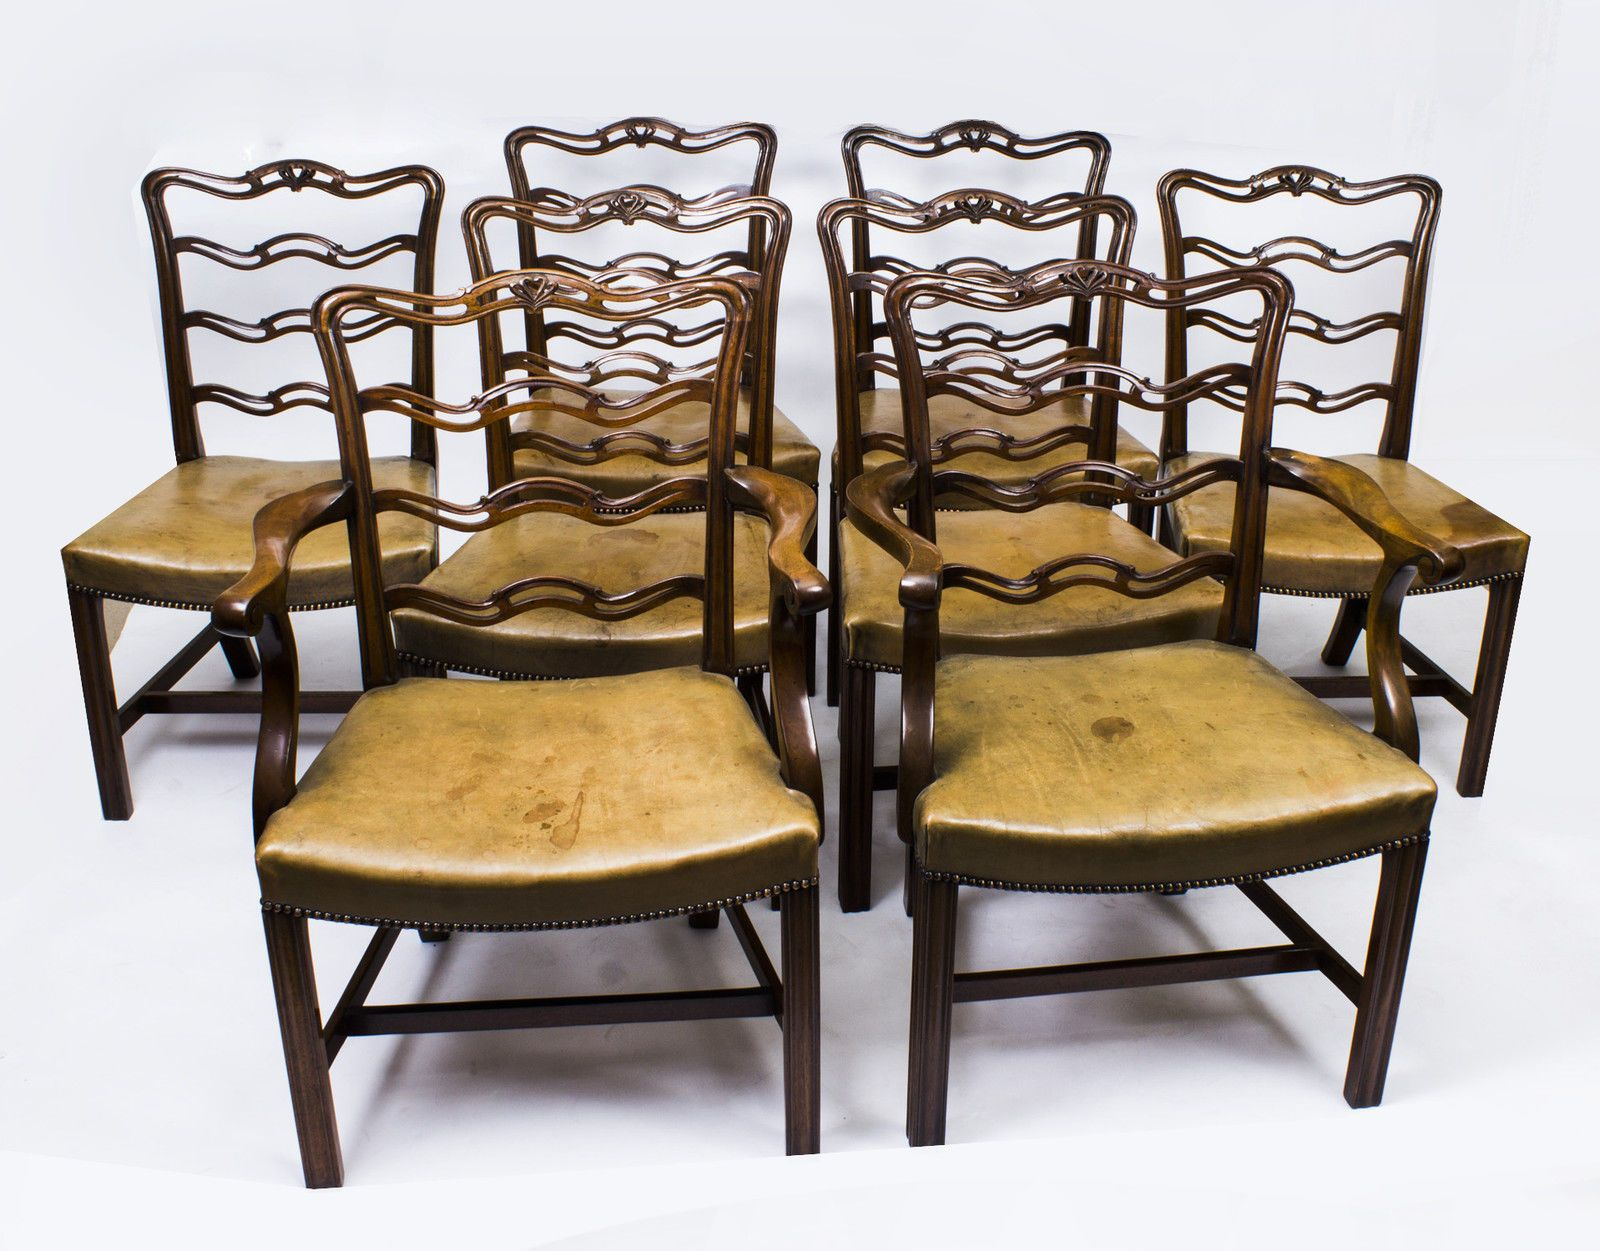 Details About Set 8 Vintage Chippendale Ladderback Dining Chairs From Harrods